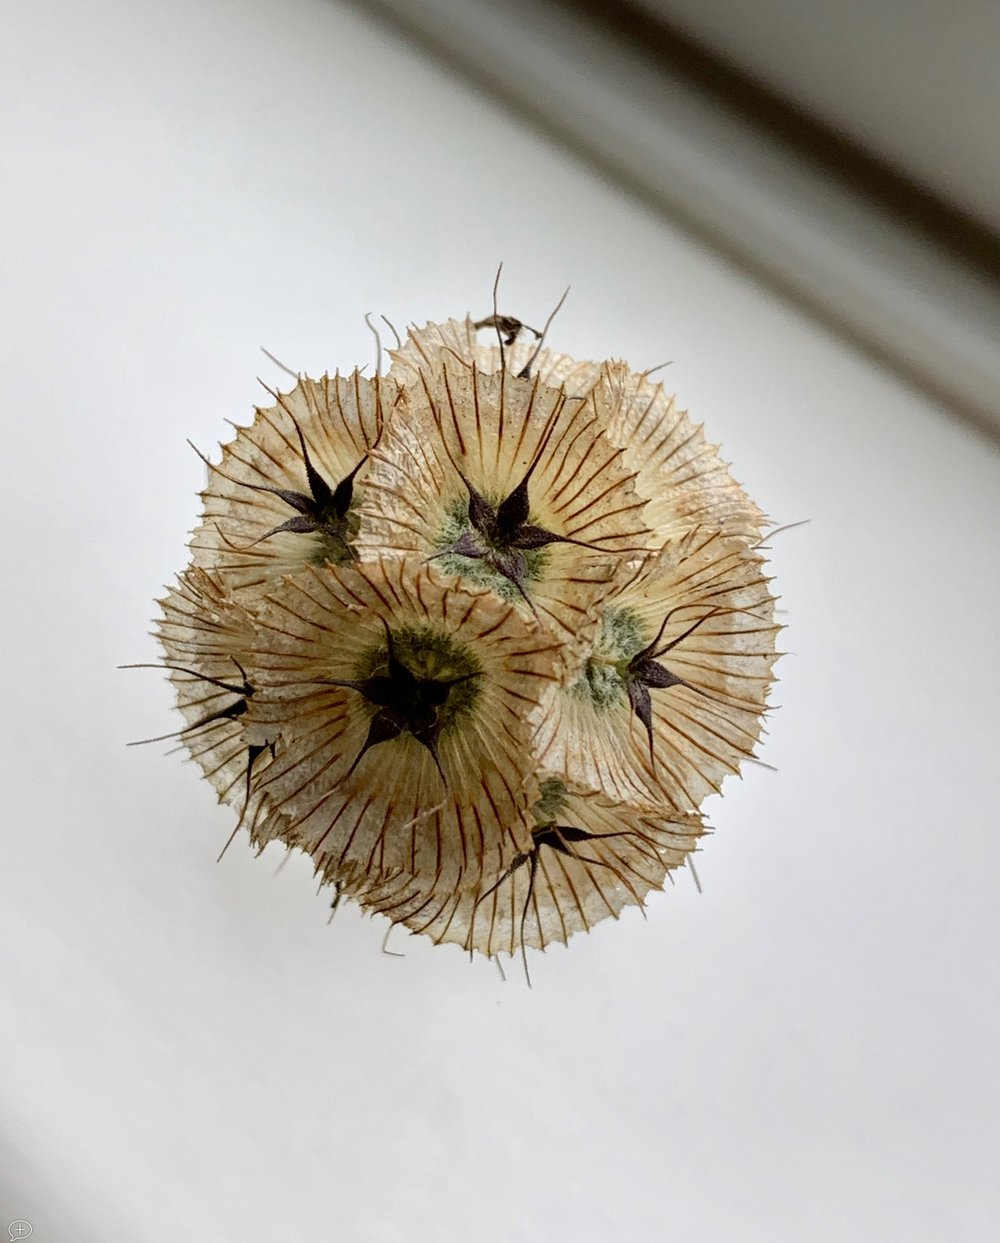 "5 . Dried Scabiosa Flower . iPhone XS, 2018. Saratoga Springs, NY.( Canvas Photo, 16"" x 20""). This flower measures less than an inch in diameter, but a close-up reveals such beautiful colors and patterns.  ©2018 Sean Walmsley"